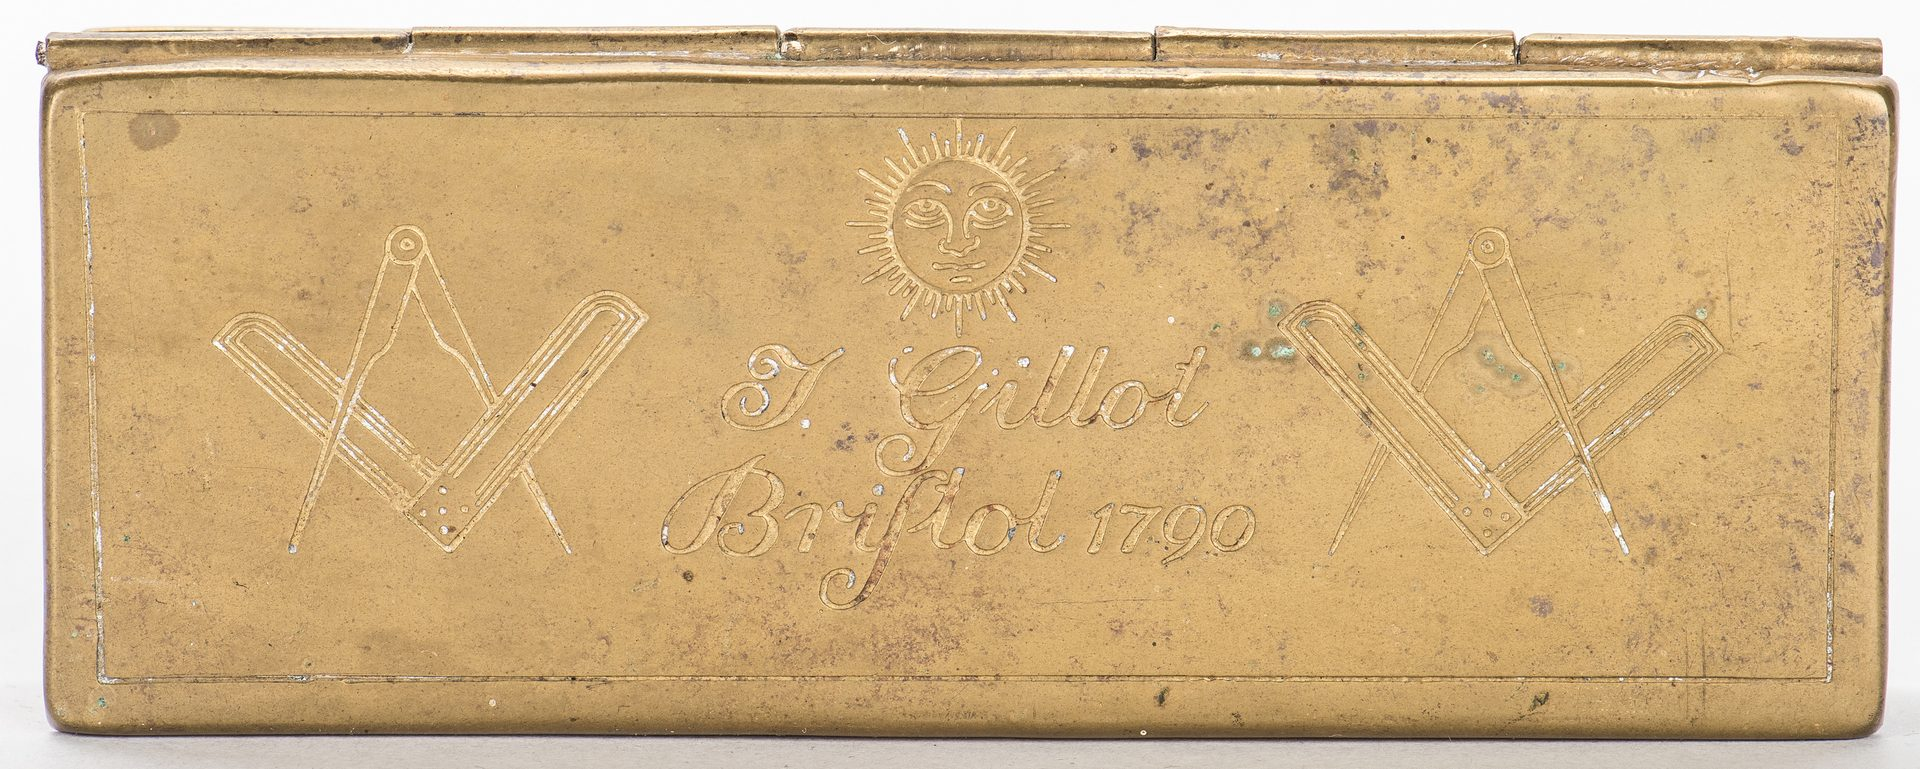 Lot 171: Collection of 7 Boxes, inc. Masonic